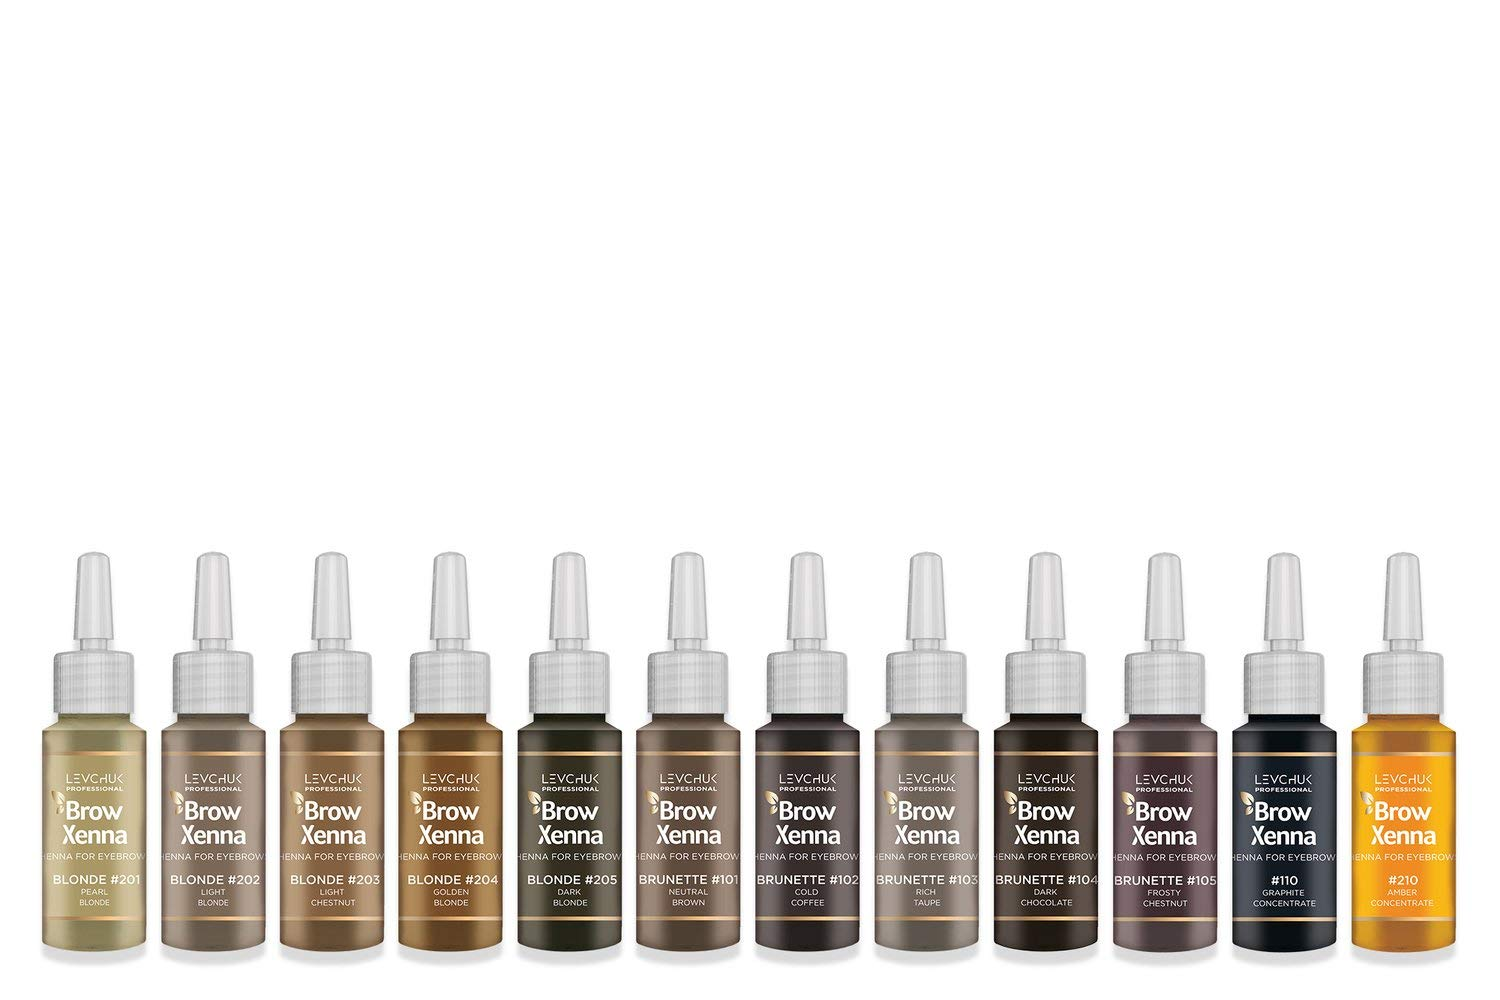 Brow Xenna Color Individual - Brow Xenna - Brow Xenna Products dluxpro